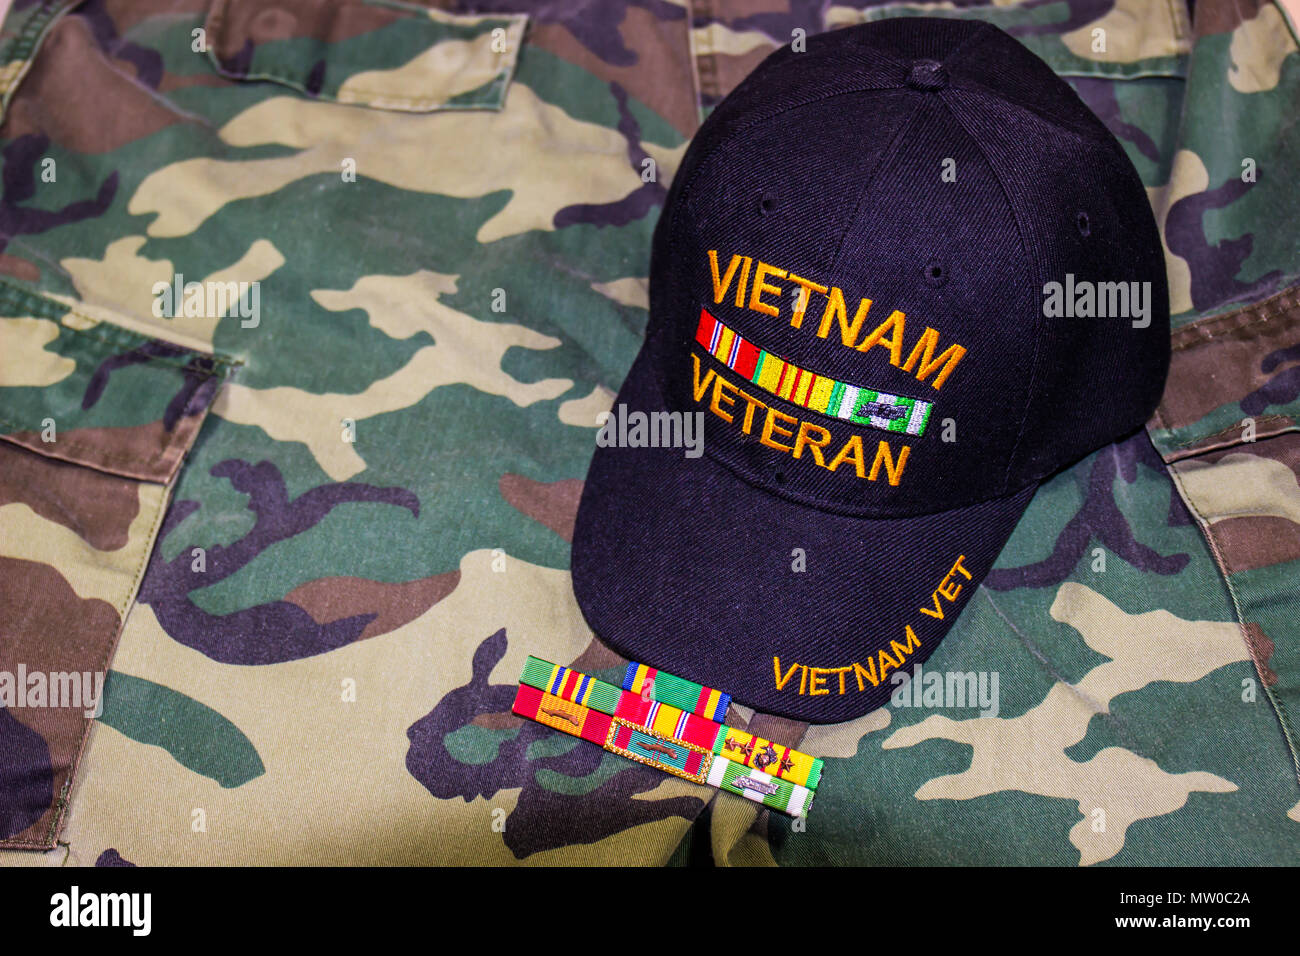 Vietnam Veteran Hat With Service Medals On Camouflage Uniform - Stock Image